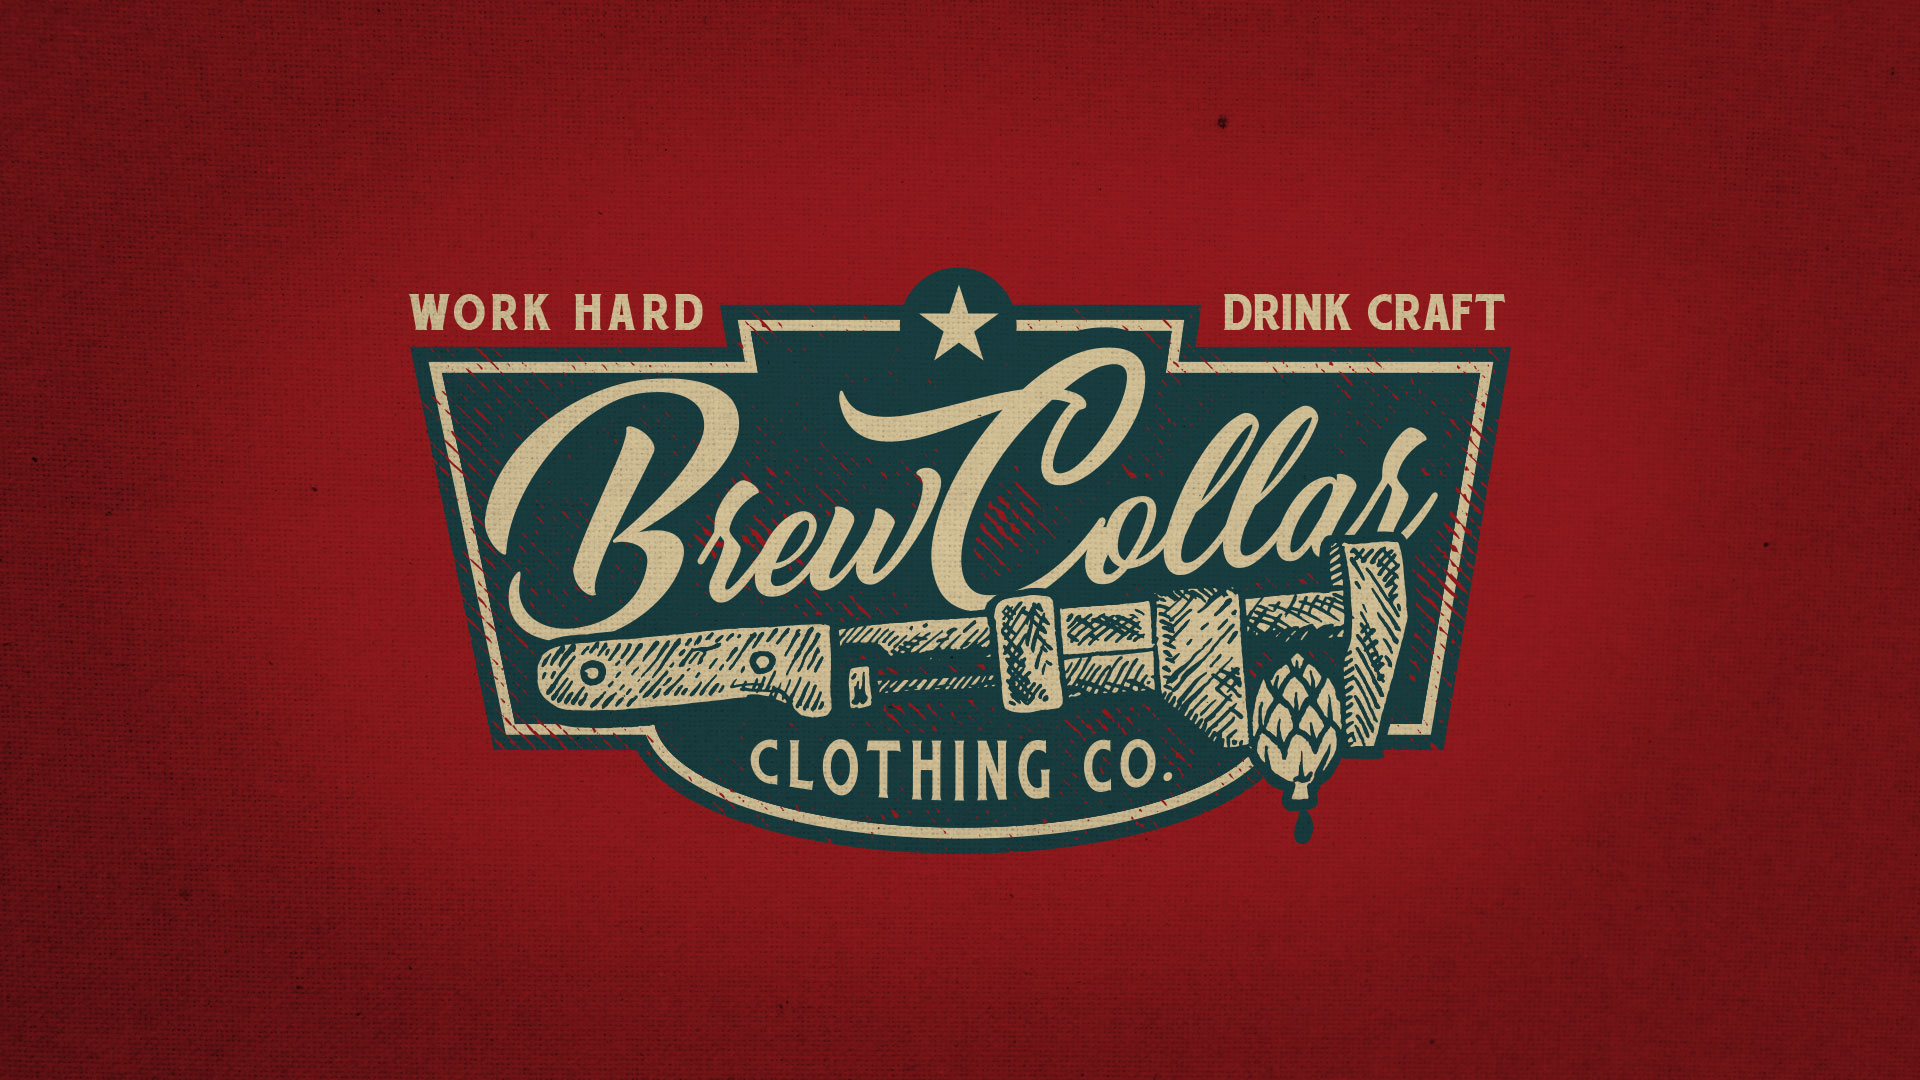 Brew Collar Clothing Co.